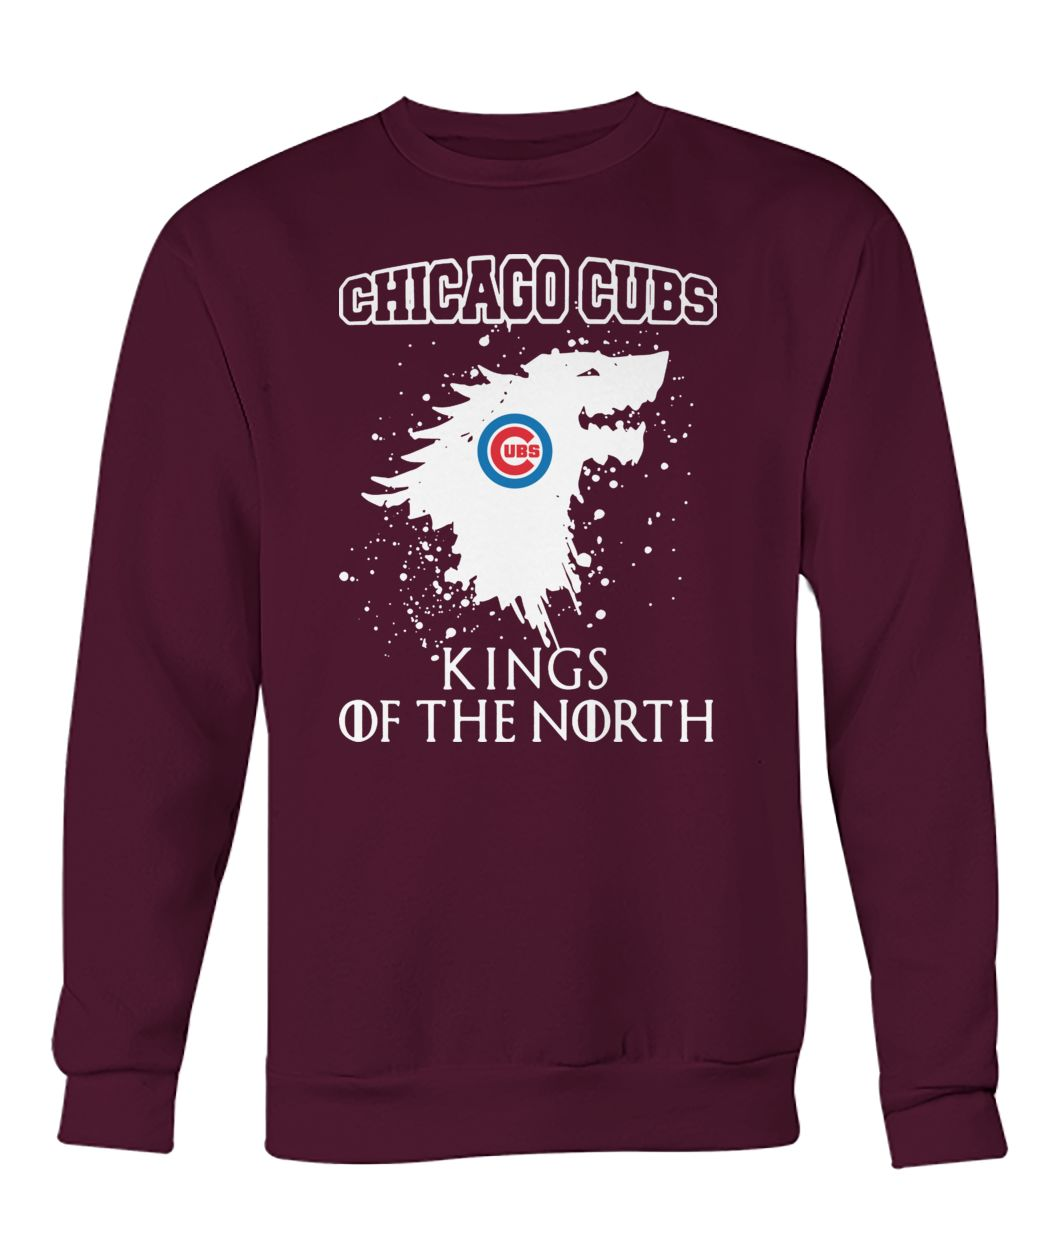 Game of thrones house stark chicago cubs kings of the north crew neck sweatshirt